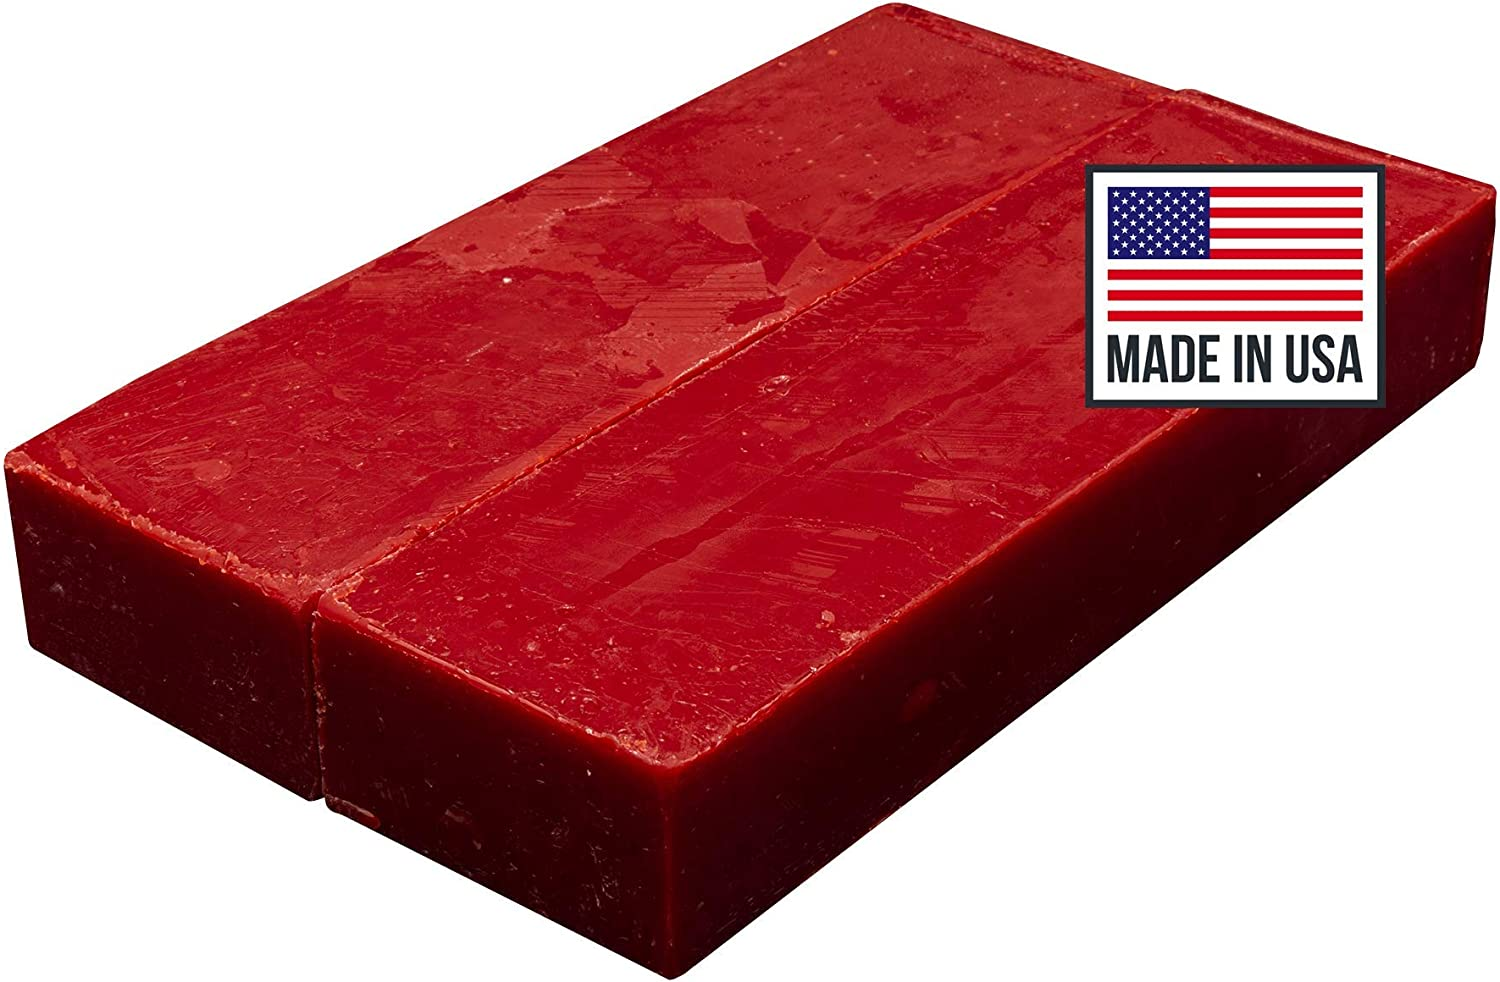 Blended Waxes, Inc. Cheese Wax 1lb. Block - Fully Refined Premium Wax For Cheese Making - Wax Can Be Used For A Variety Of Different Cheese Types (2, Red)